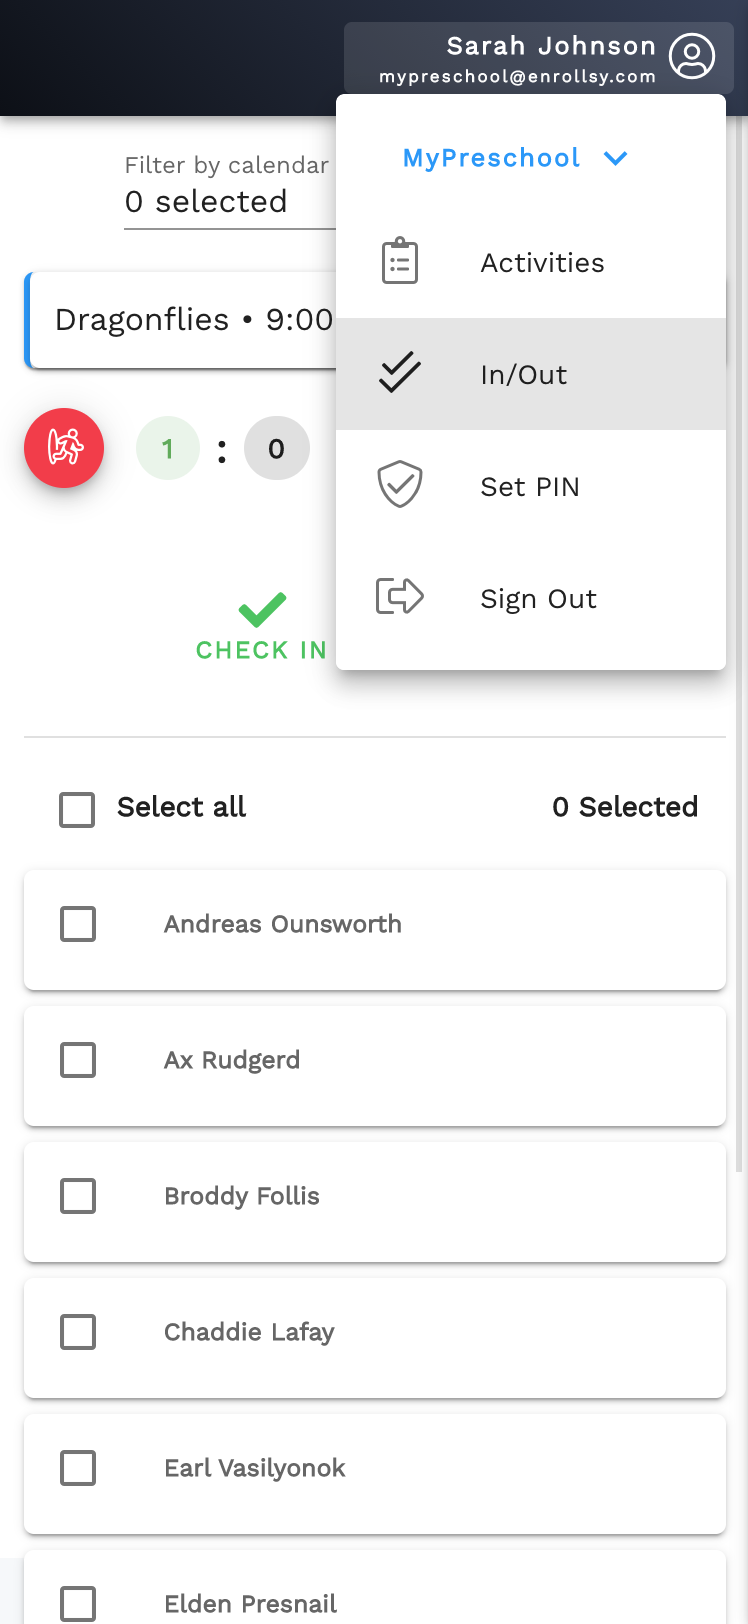 Check-in/out page in Enrollsy's Teacher App